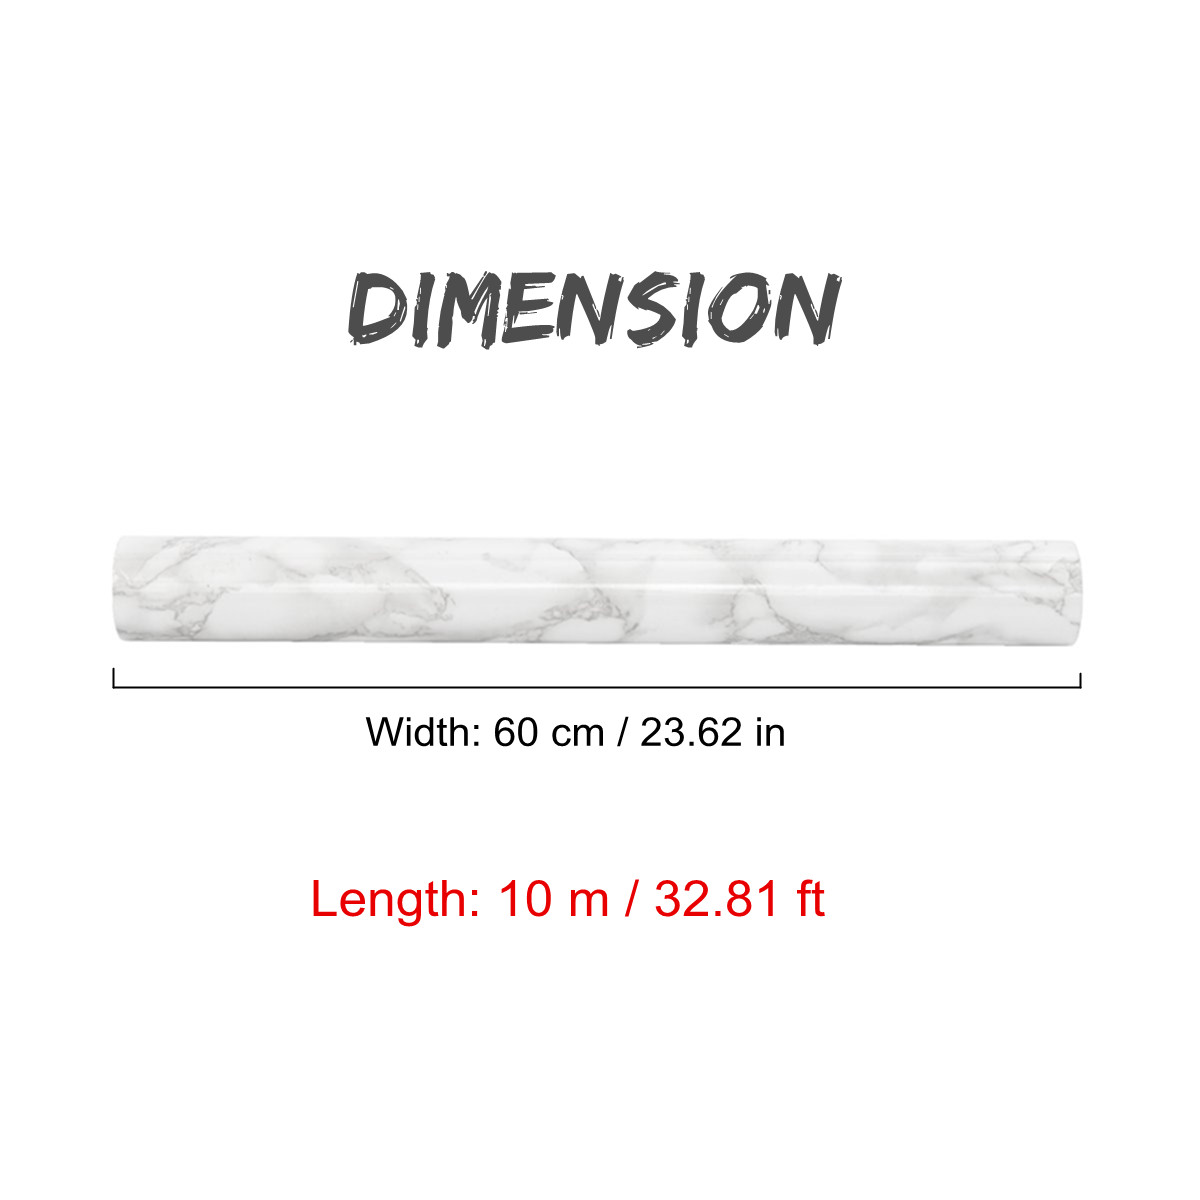 PVC Self Adhesive Studio Marble Texture Wallpaper Roll Bedroom Wall Sticker Refurbished Wardrobe Cupboard Home Decor 0.6x10M